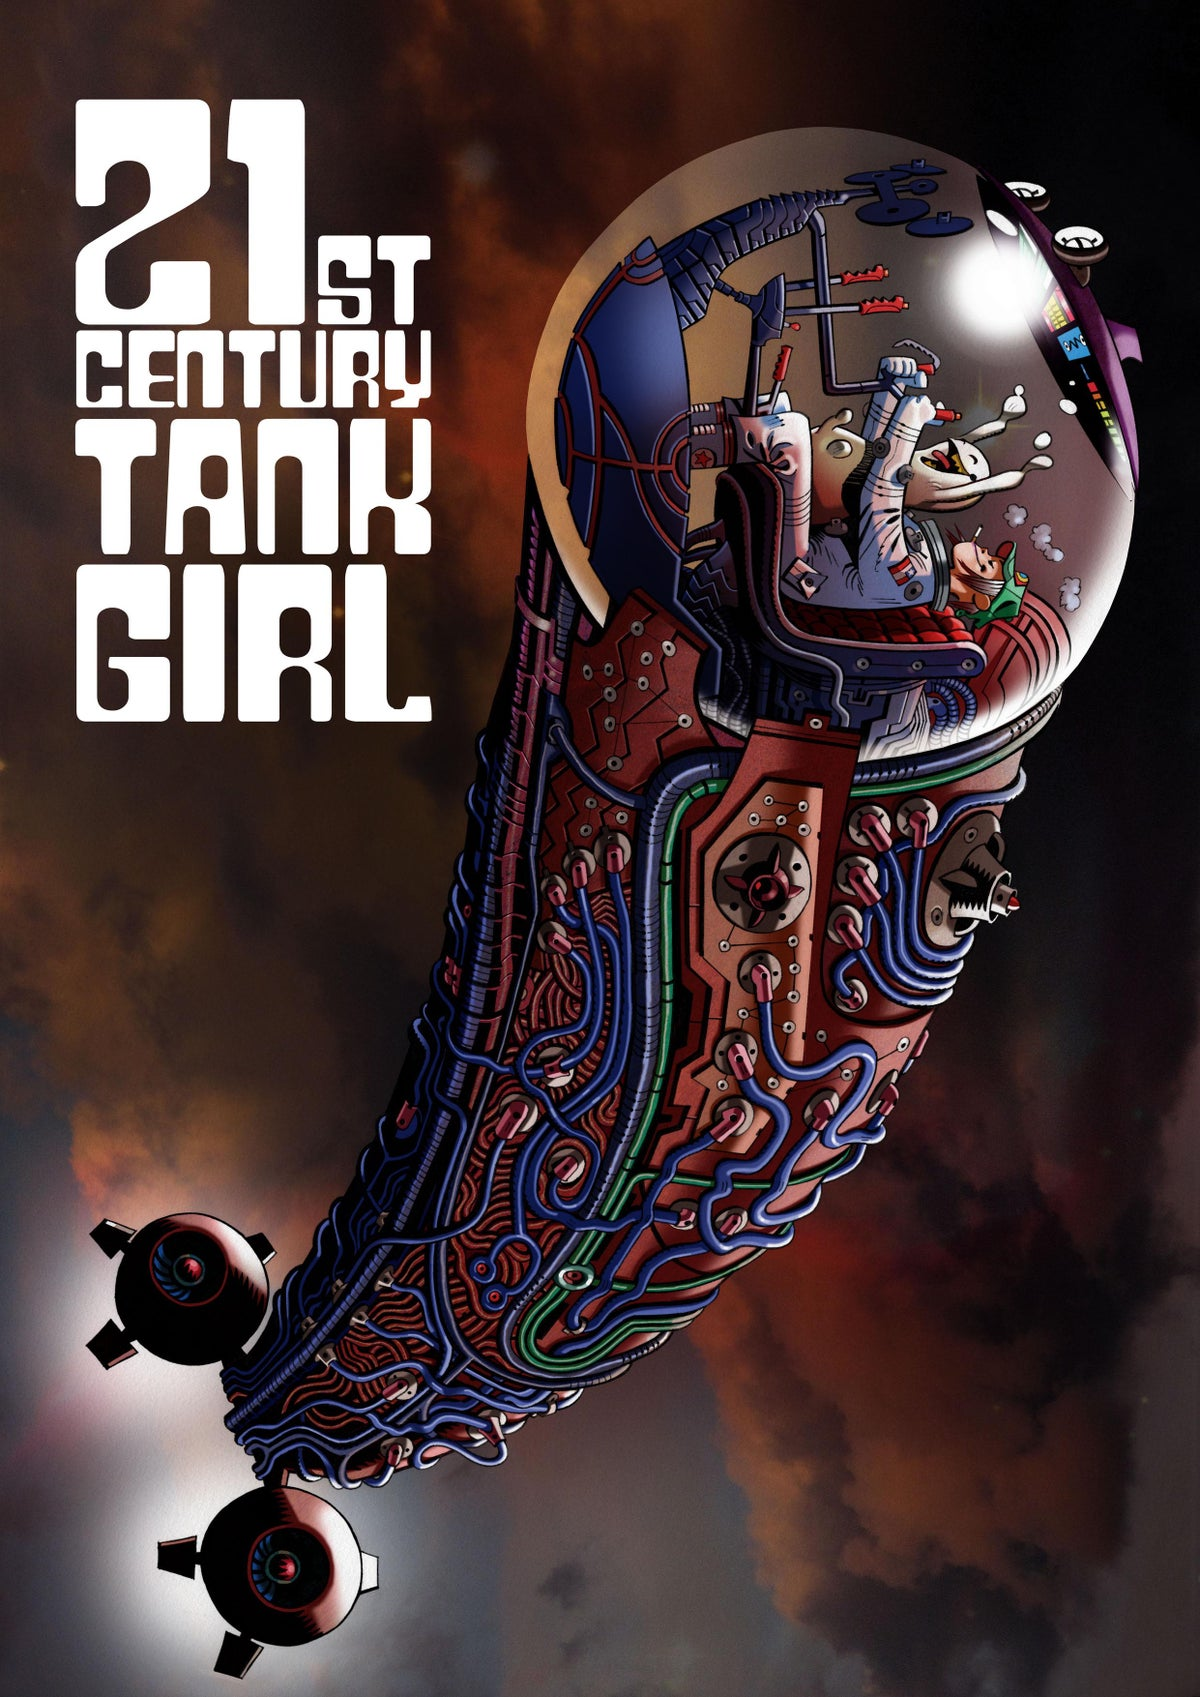 Image of 21st Century Tank Girl Book - Kickstarter Bookplate Edition with Hewlett Dust Jacket